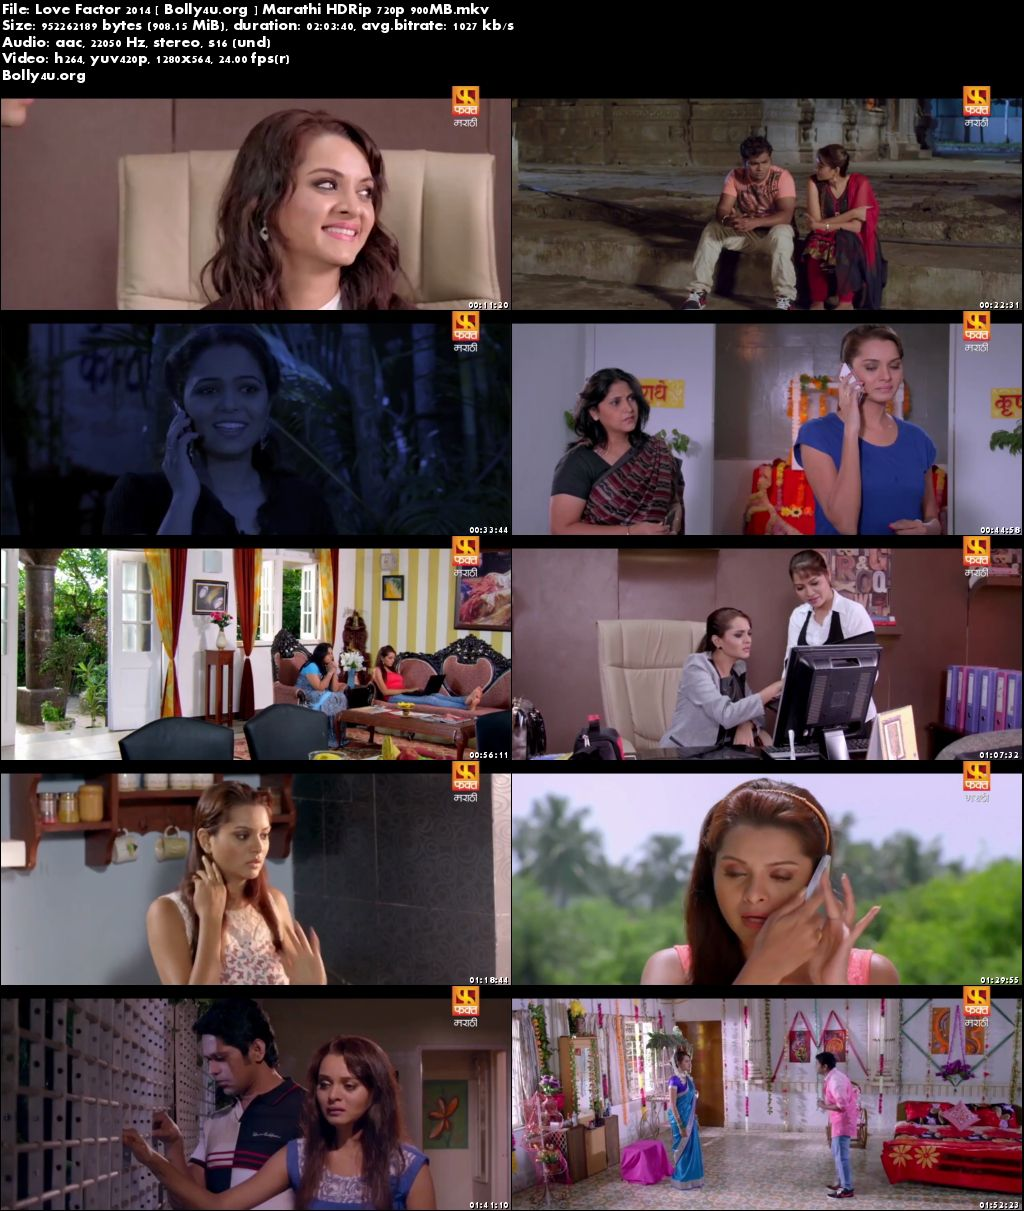 Love Factor 2014 HDRip 350Mb Marathi Movie 480p Download